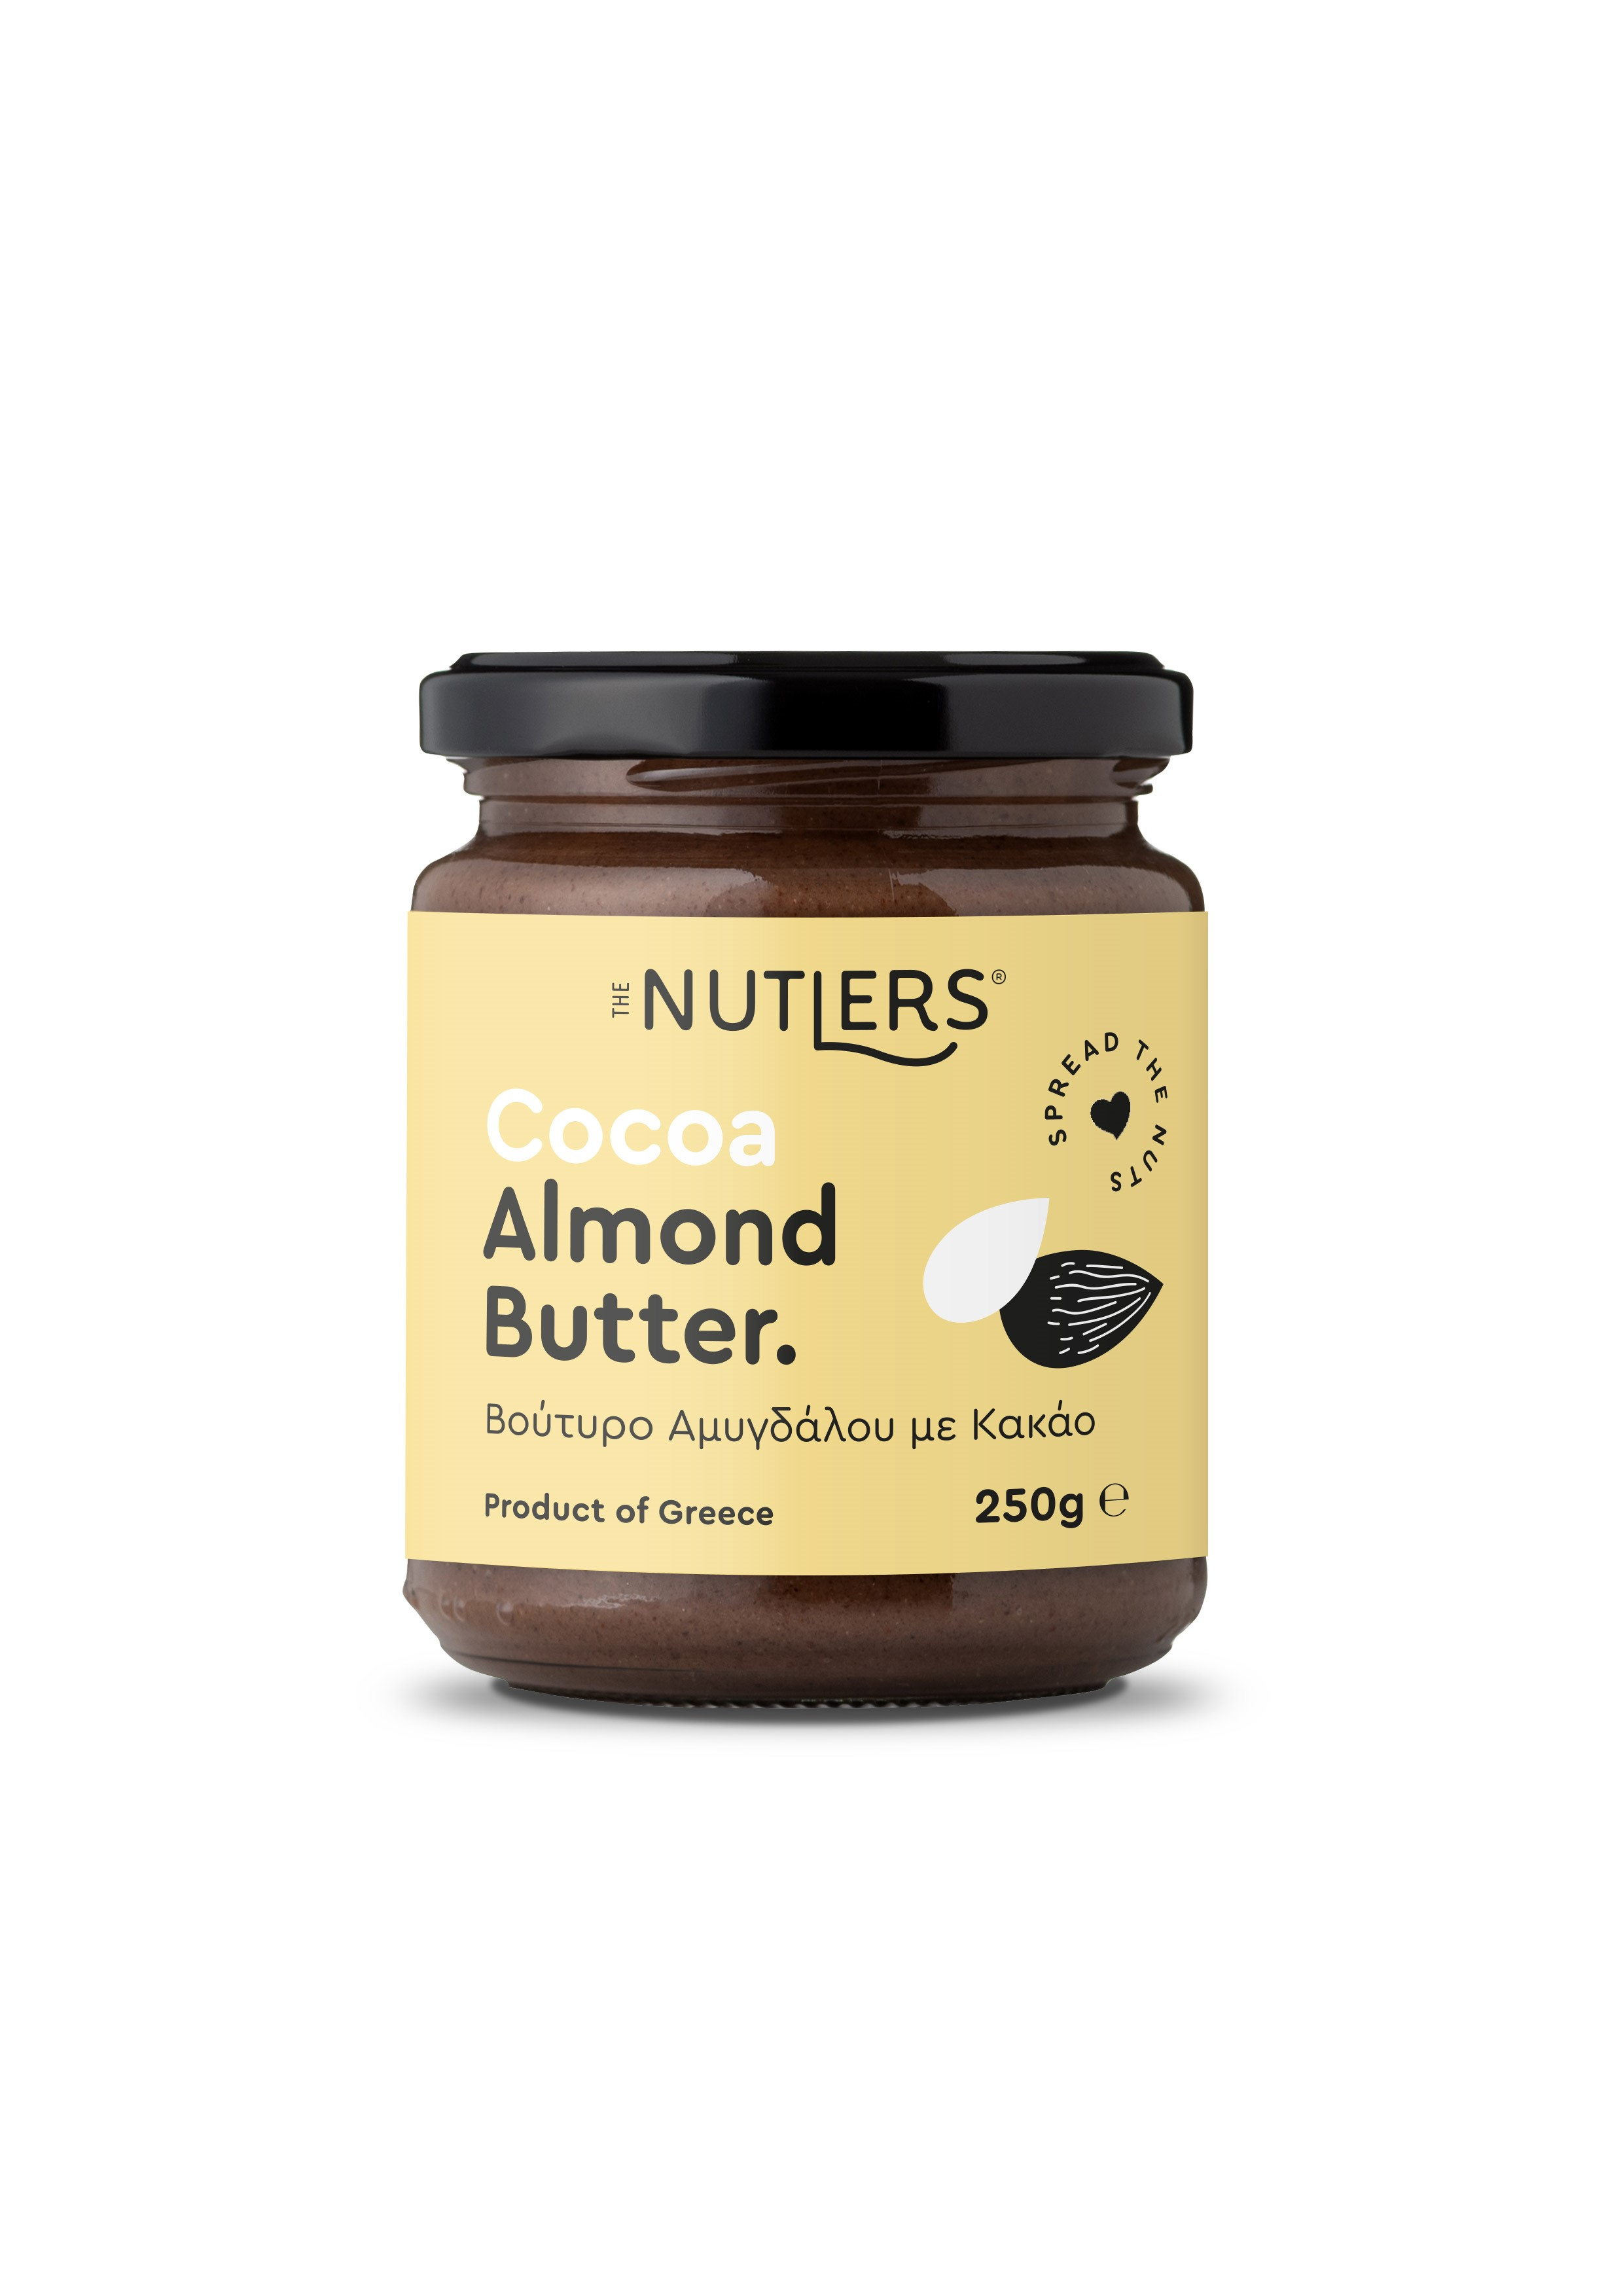 The Nutlers COCOA ALMOND BUTTER